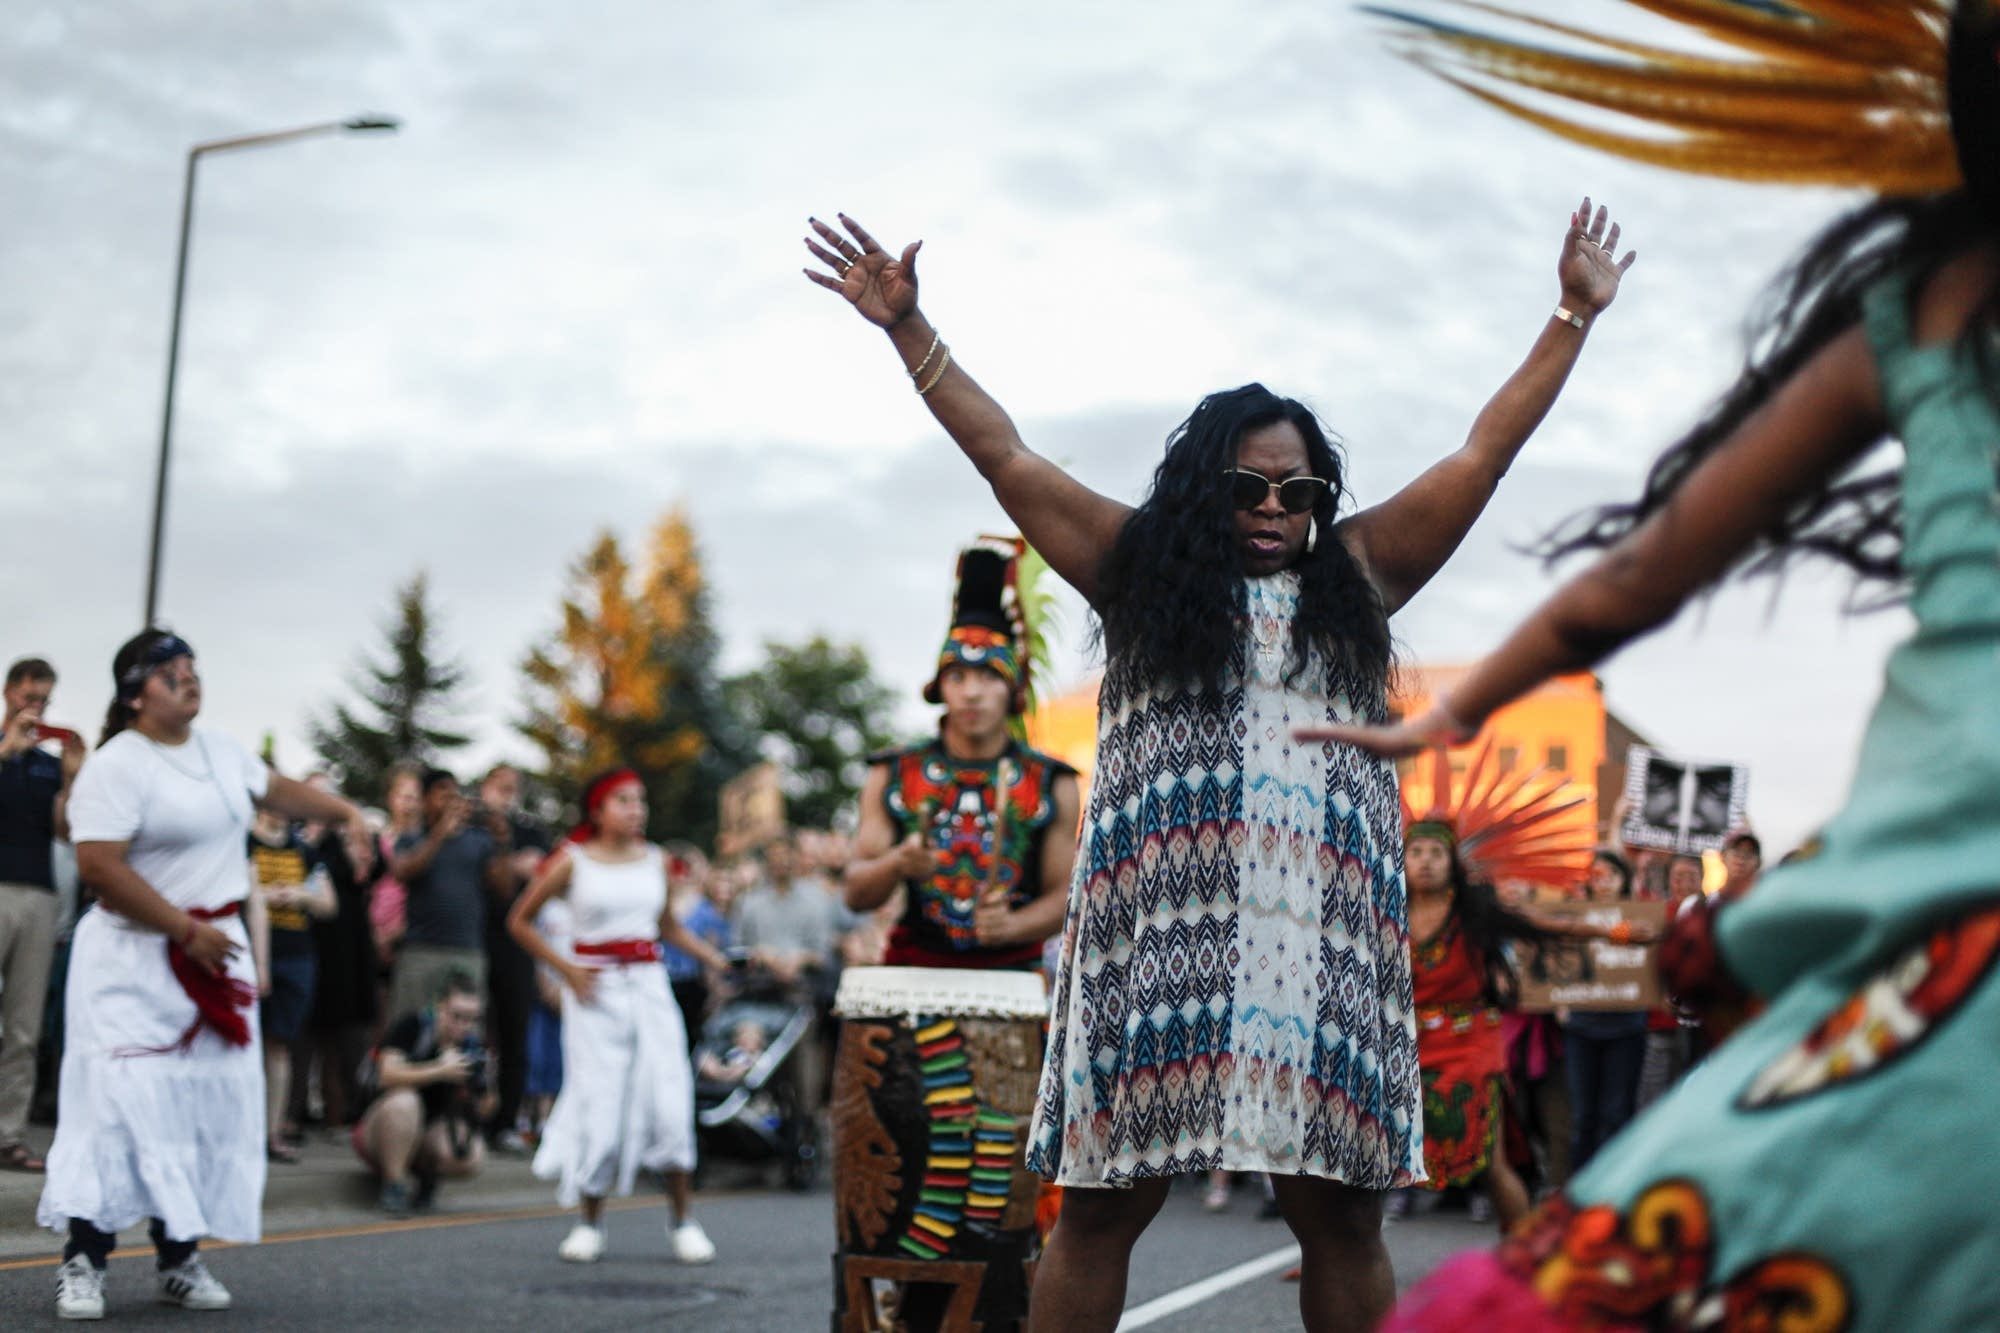 Valarie Castile, mother of Philando Castile dances during protest